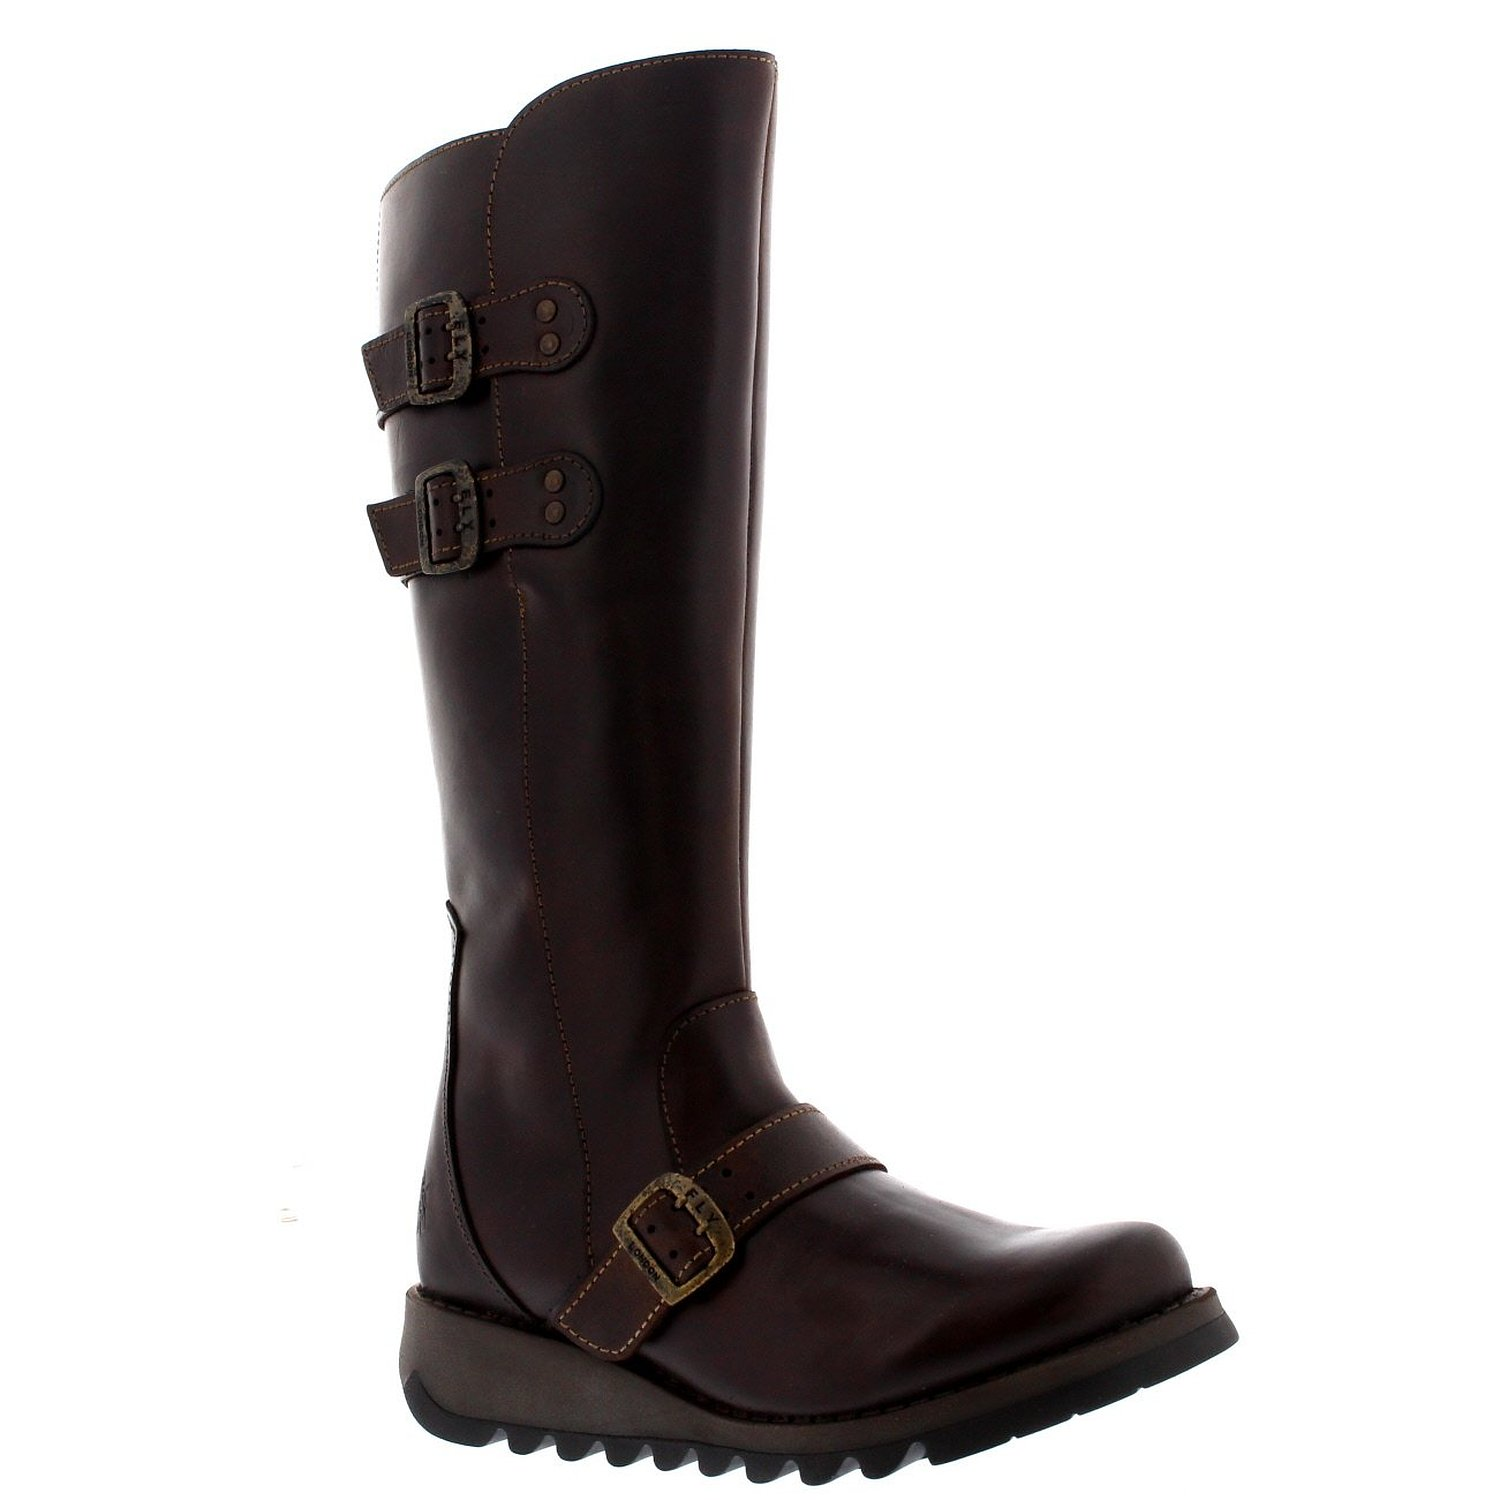 3e0c3b8995fd Get Quotations · Womens Fly London Solv Leather Wedge Riding Winter Knee  High Snow Boots